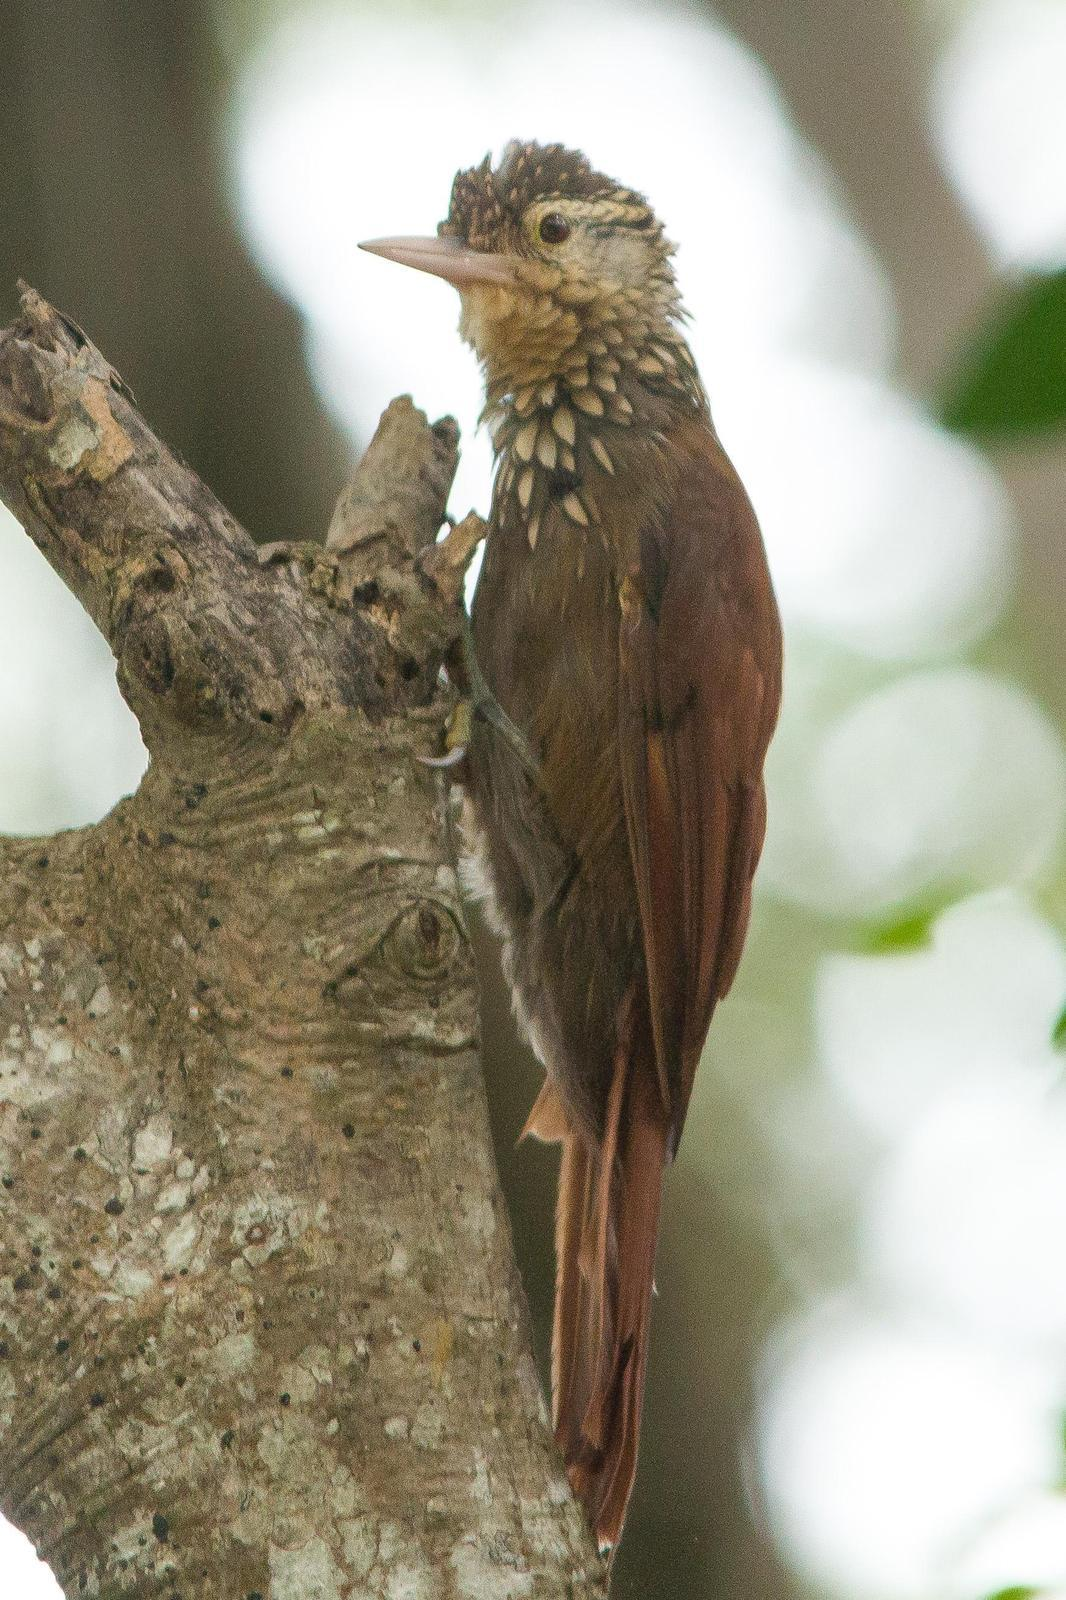 Straight-billed Woodcreeper Photo by Marie-France Rivard